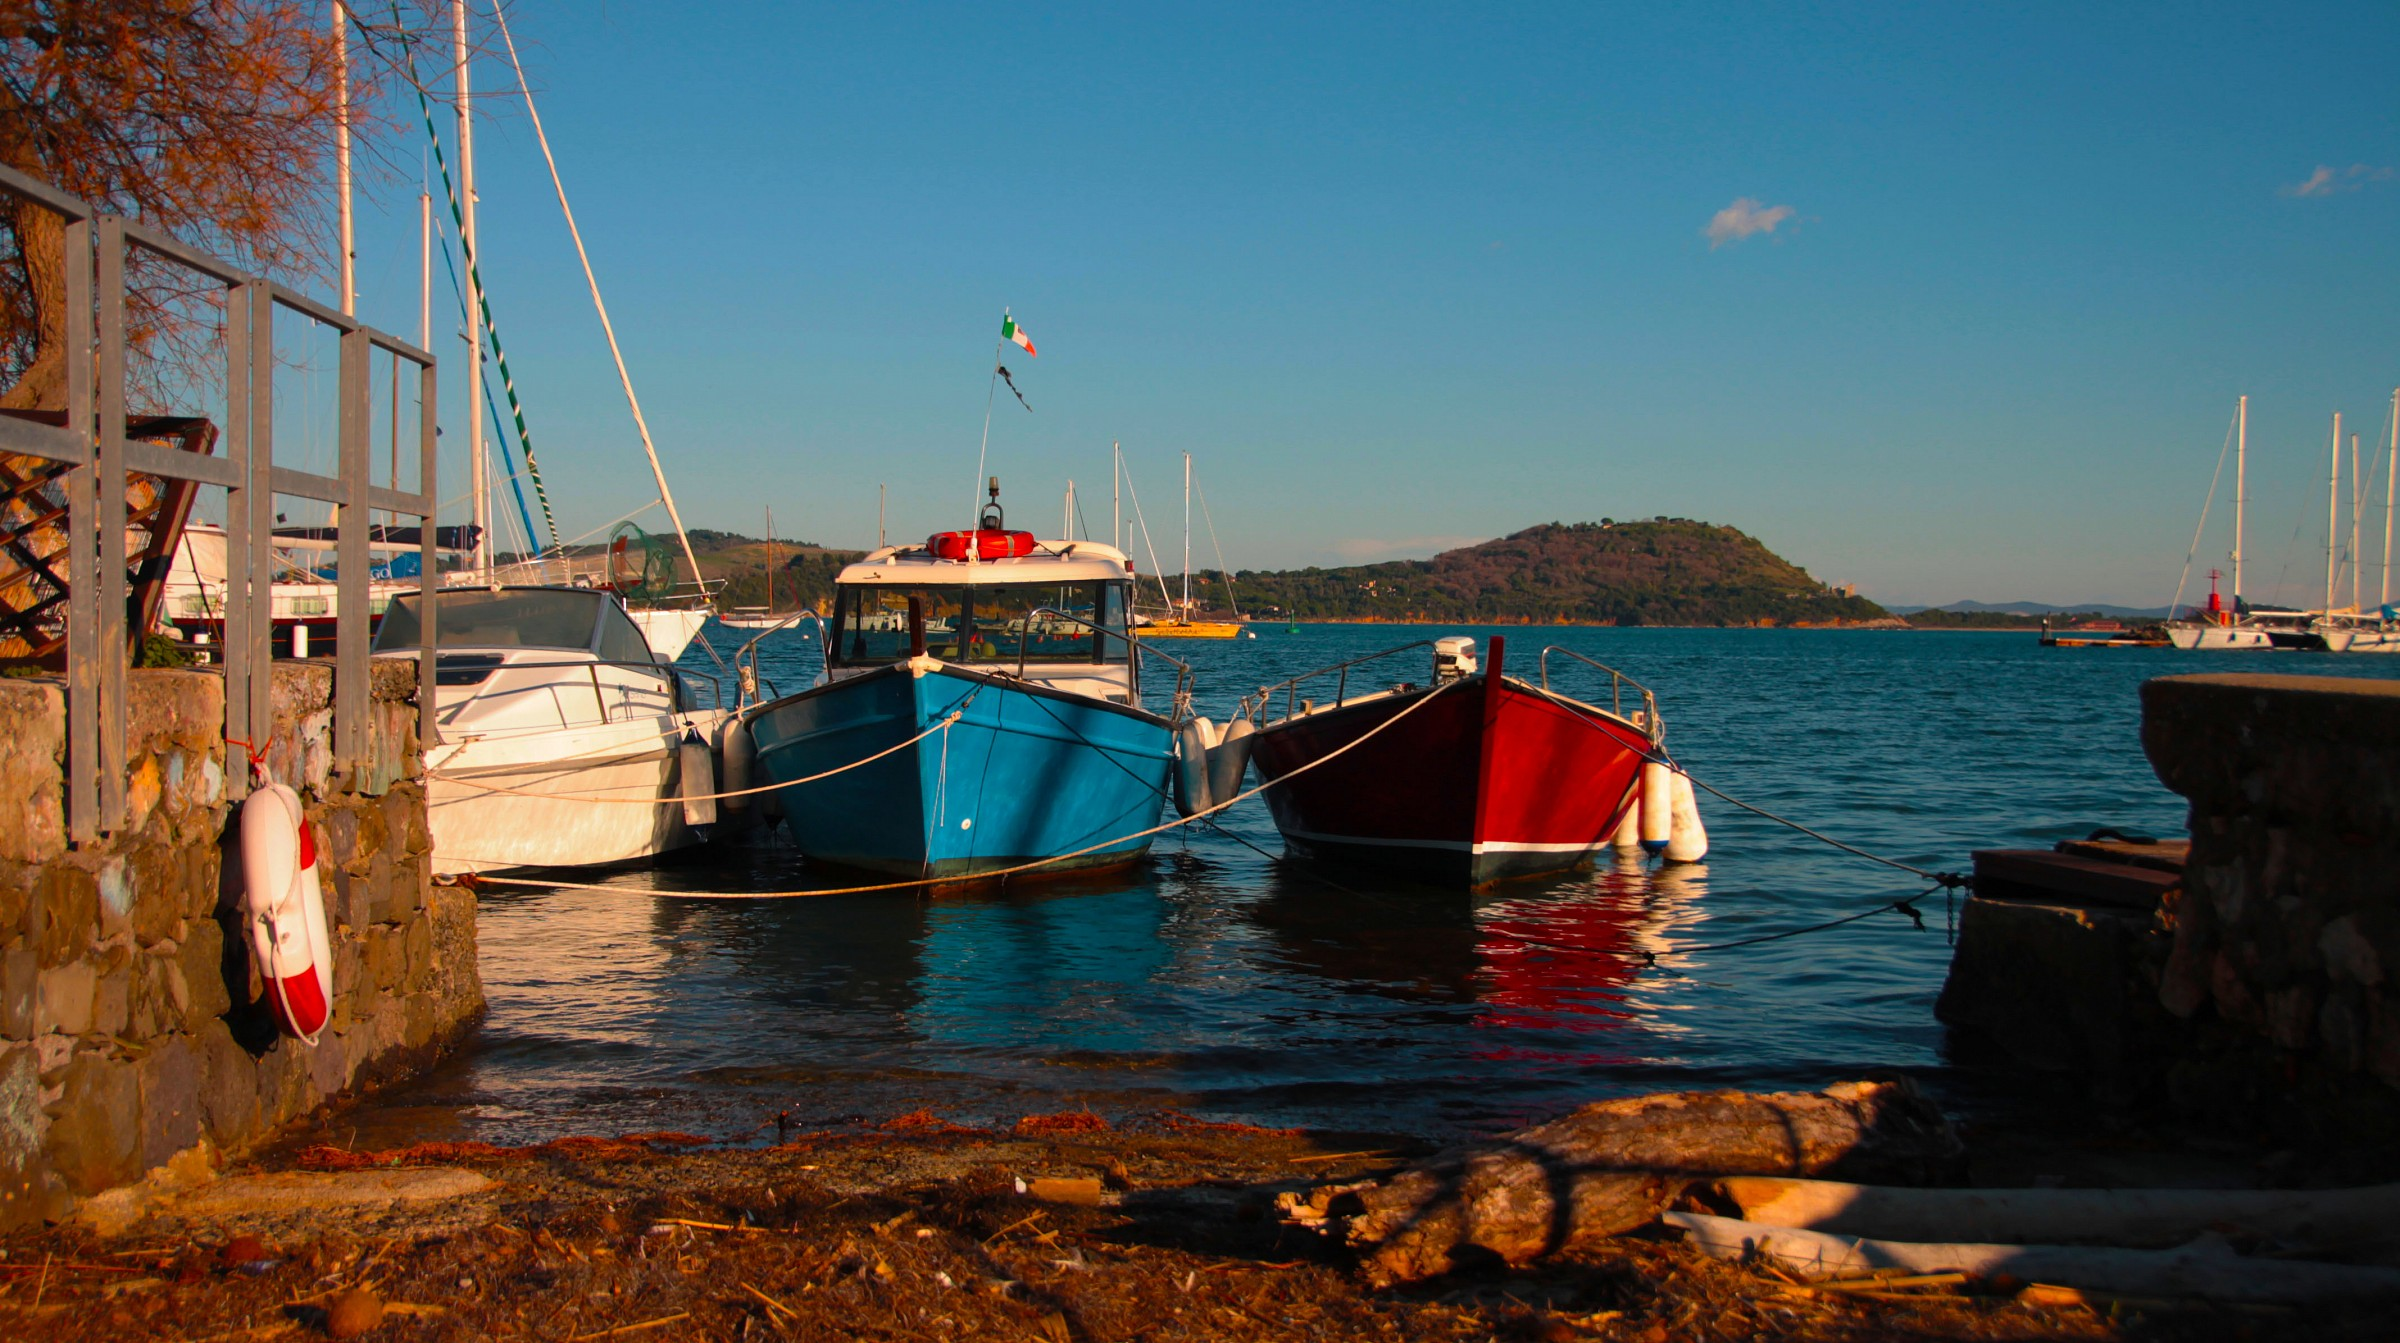 Boats for Mooring...